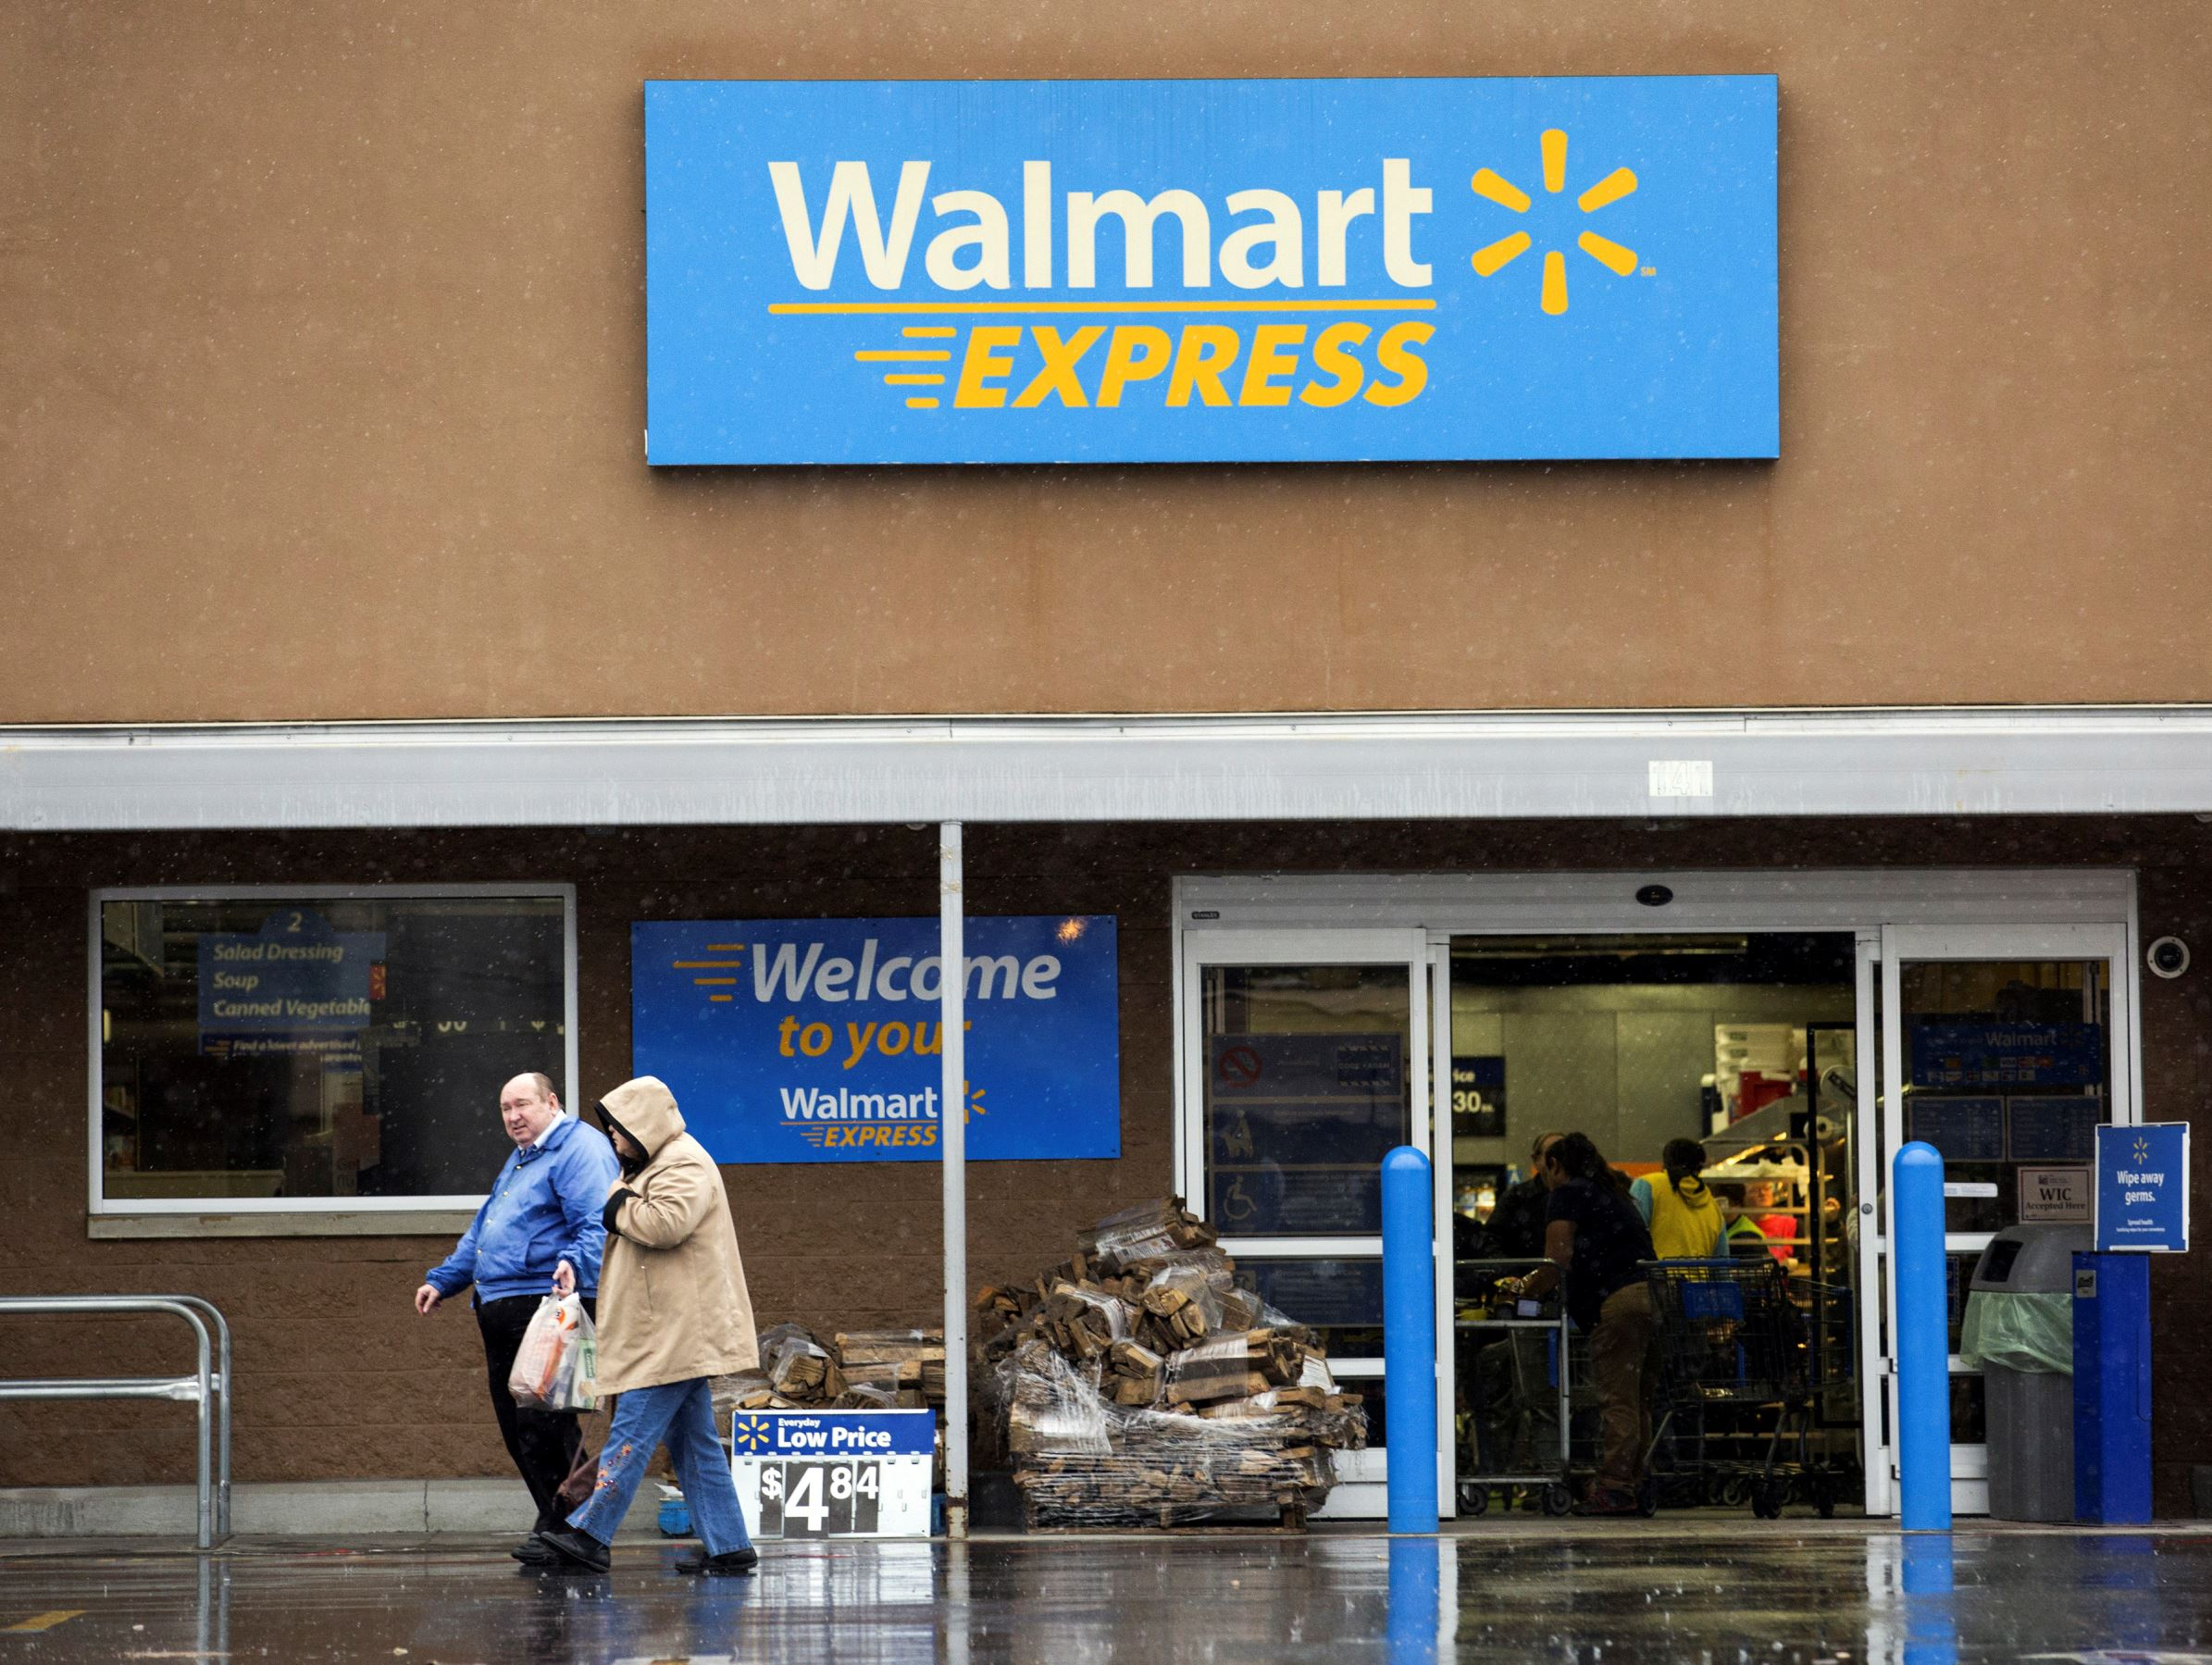 Customers exit a Wal-Mart Express store in Richfield, North Carolina, U.S.. Wal-Mart Stores Inc. plans to close 269 store, including its experimental small-format Express outlets, in a much to streamline the chain that will eliminate 16,000 jobs.